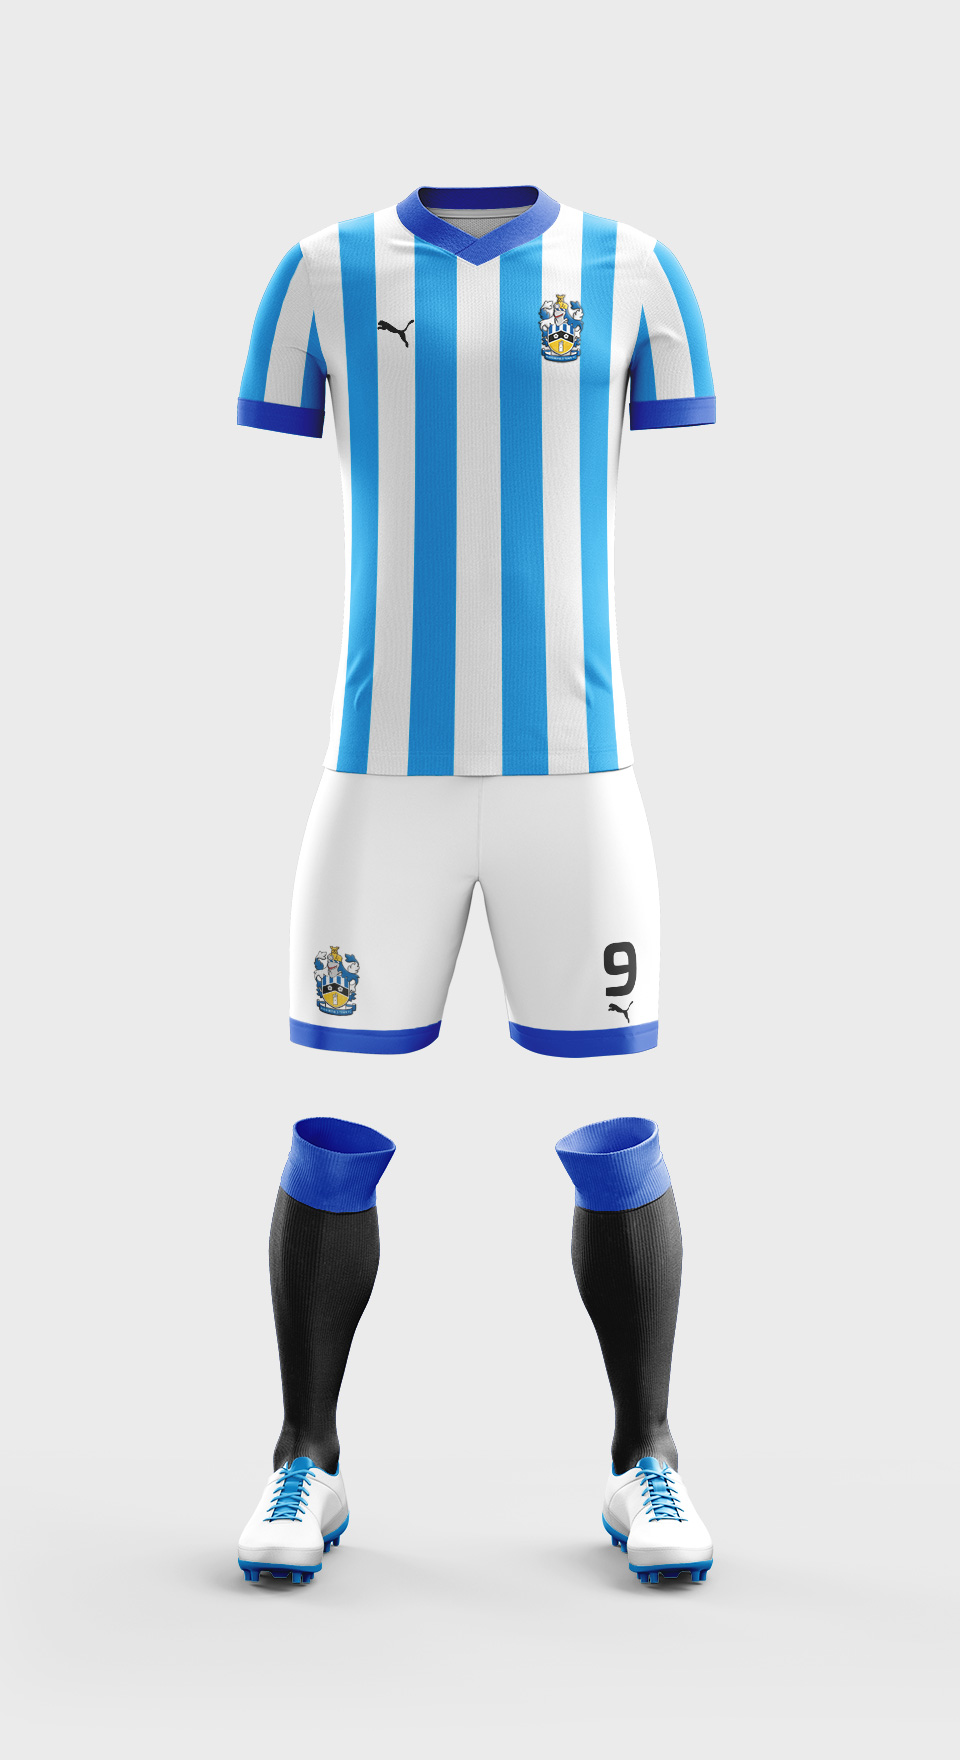 huddersfield town kit design